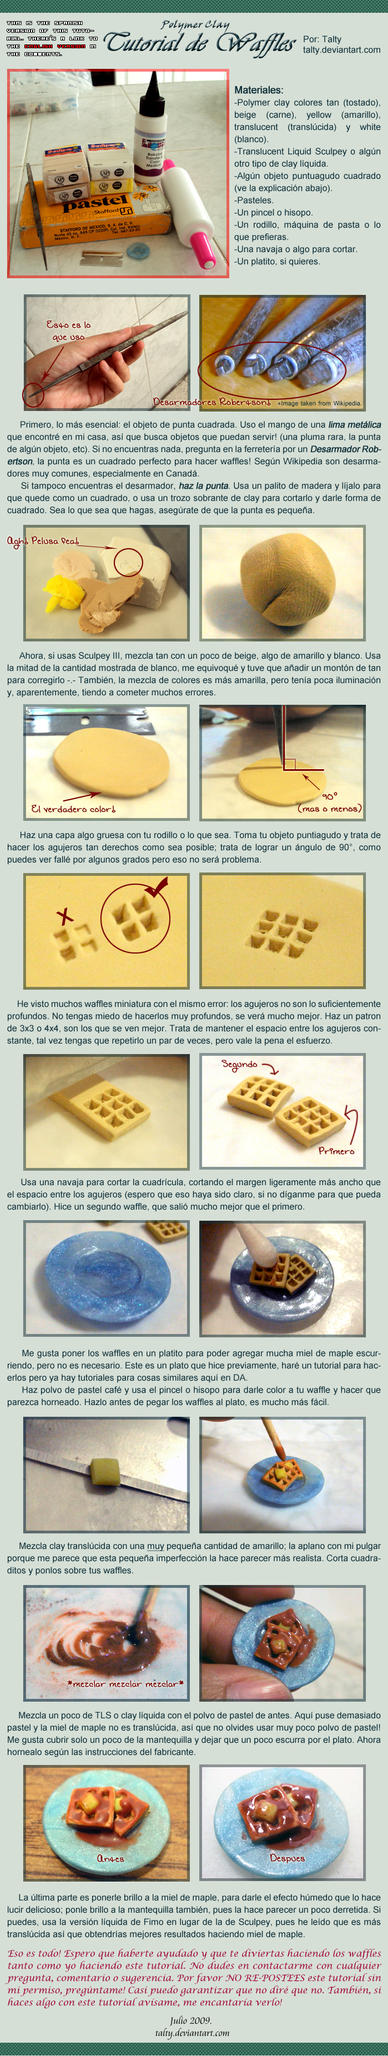 PC Tutorial de Waffles by Talty